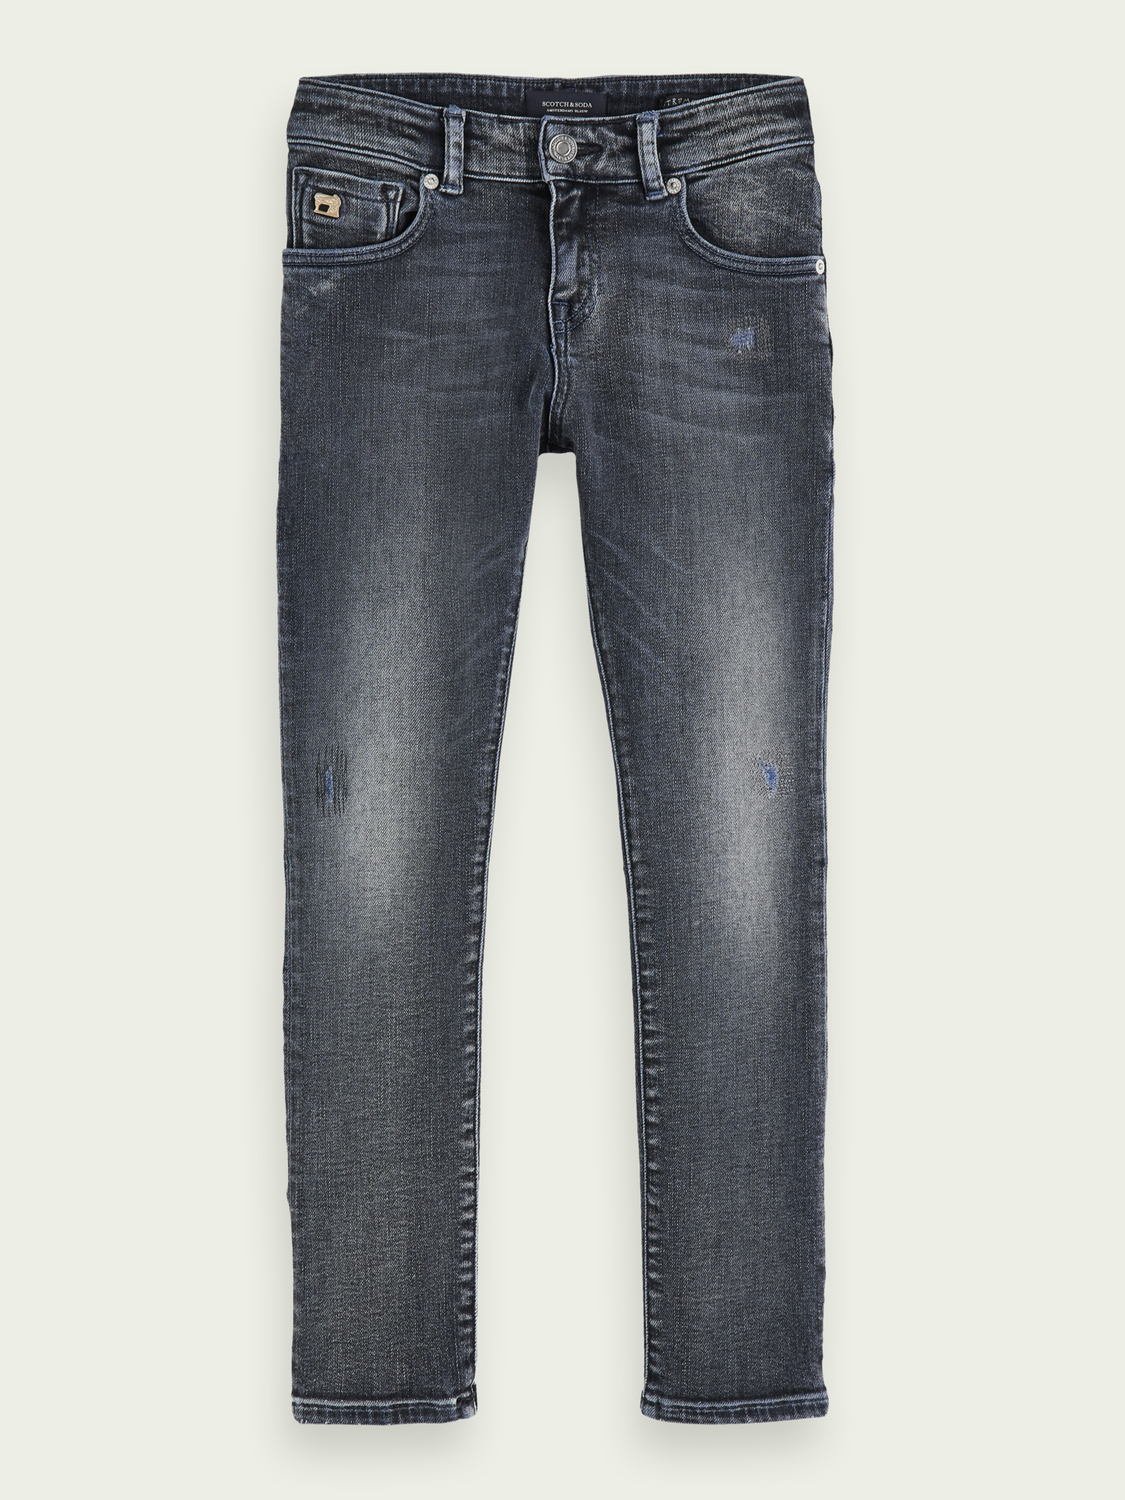 Bambini Strummer – Indigo Layer | Jeans stretch skinny in cotone biologico